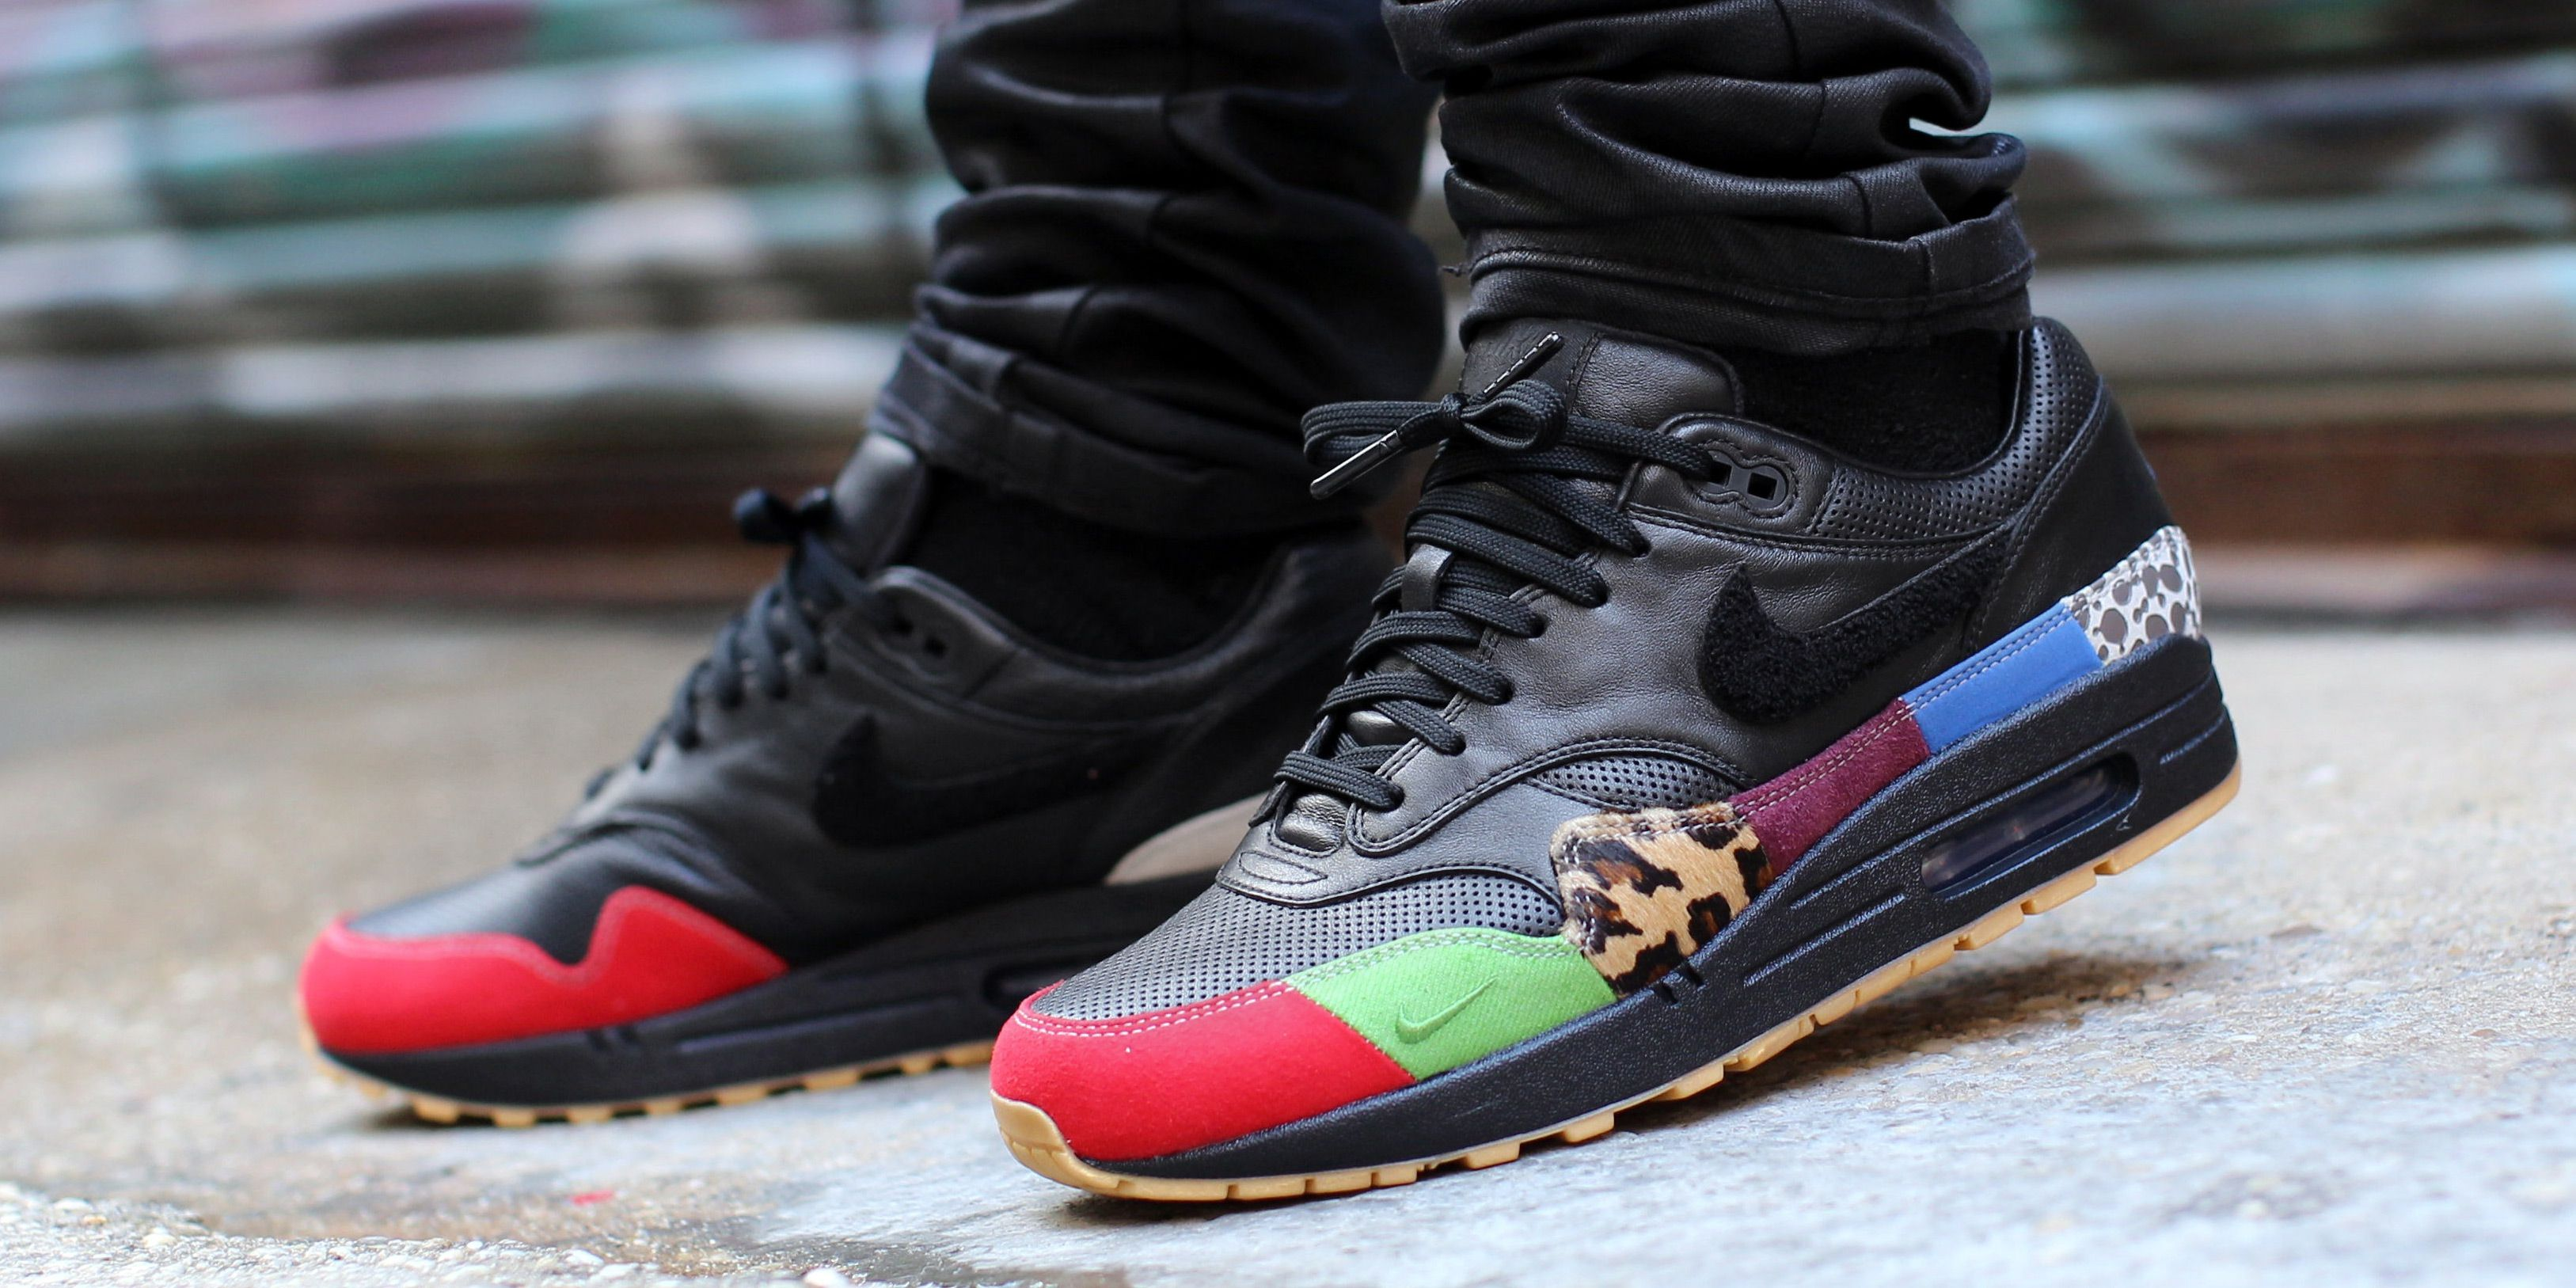 separation shoes 4334b b7d2d Nikes New Air Max 1 Master Is a Sneakerheads Dream